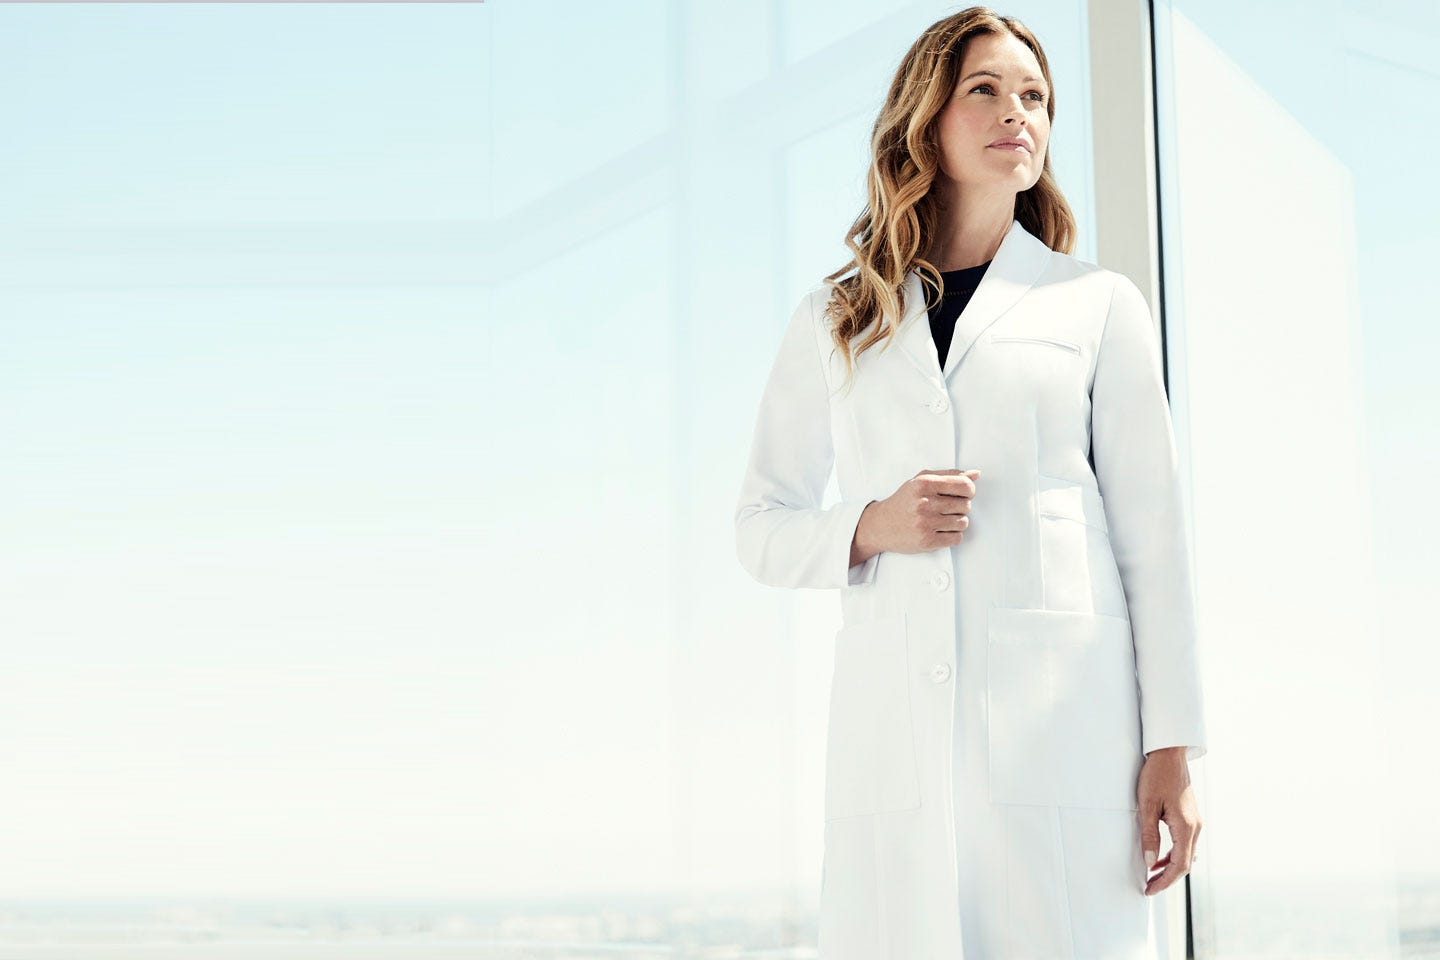 c4ff8a999a9 Emma W. M3 - Women's Shawl Collar White Lab Coat | Medelita